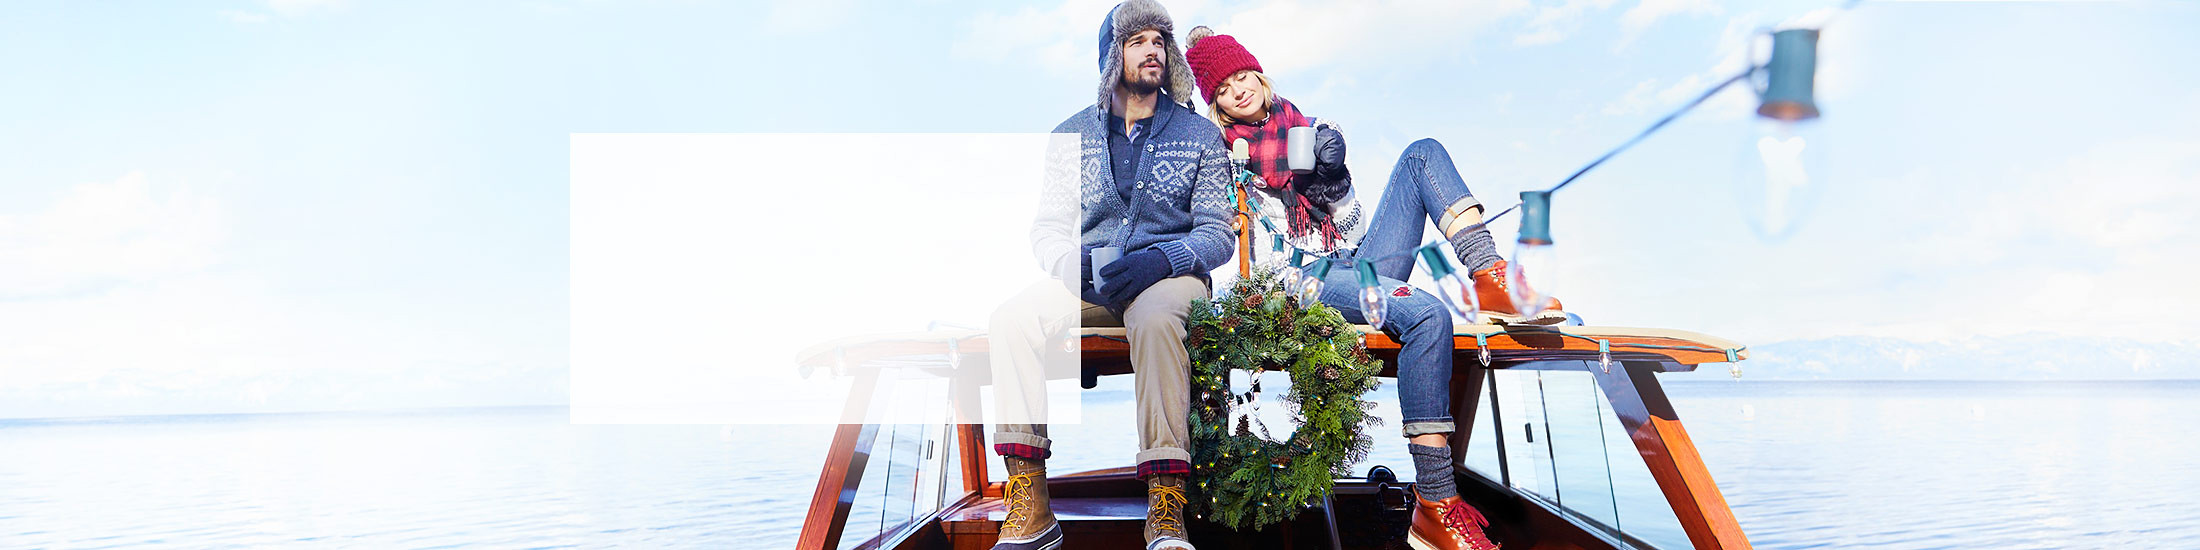 A man and a woman sit on a boat decorated for the holidays